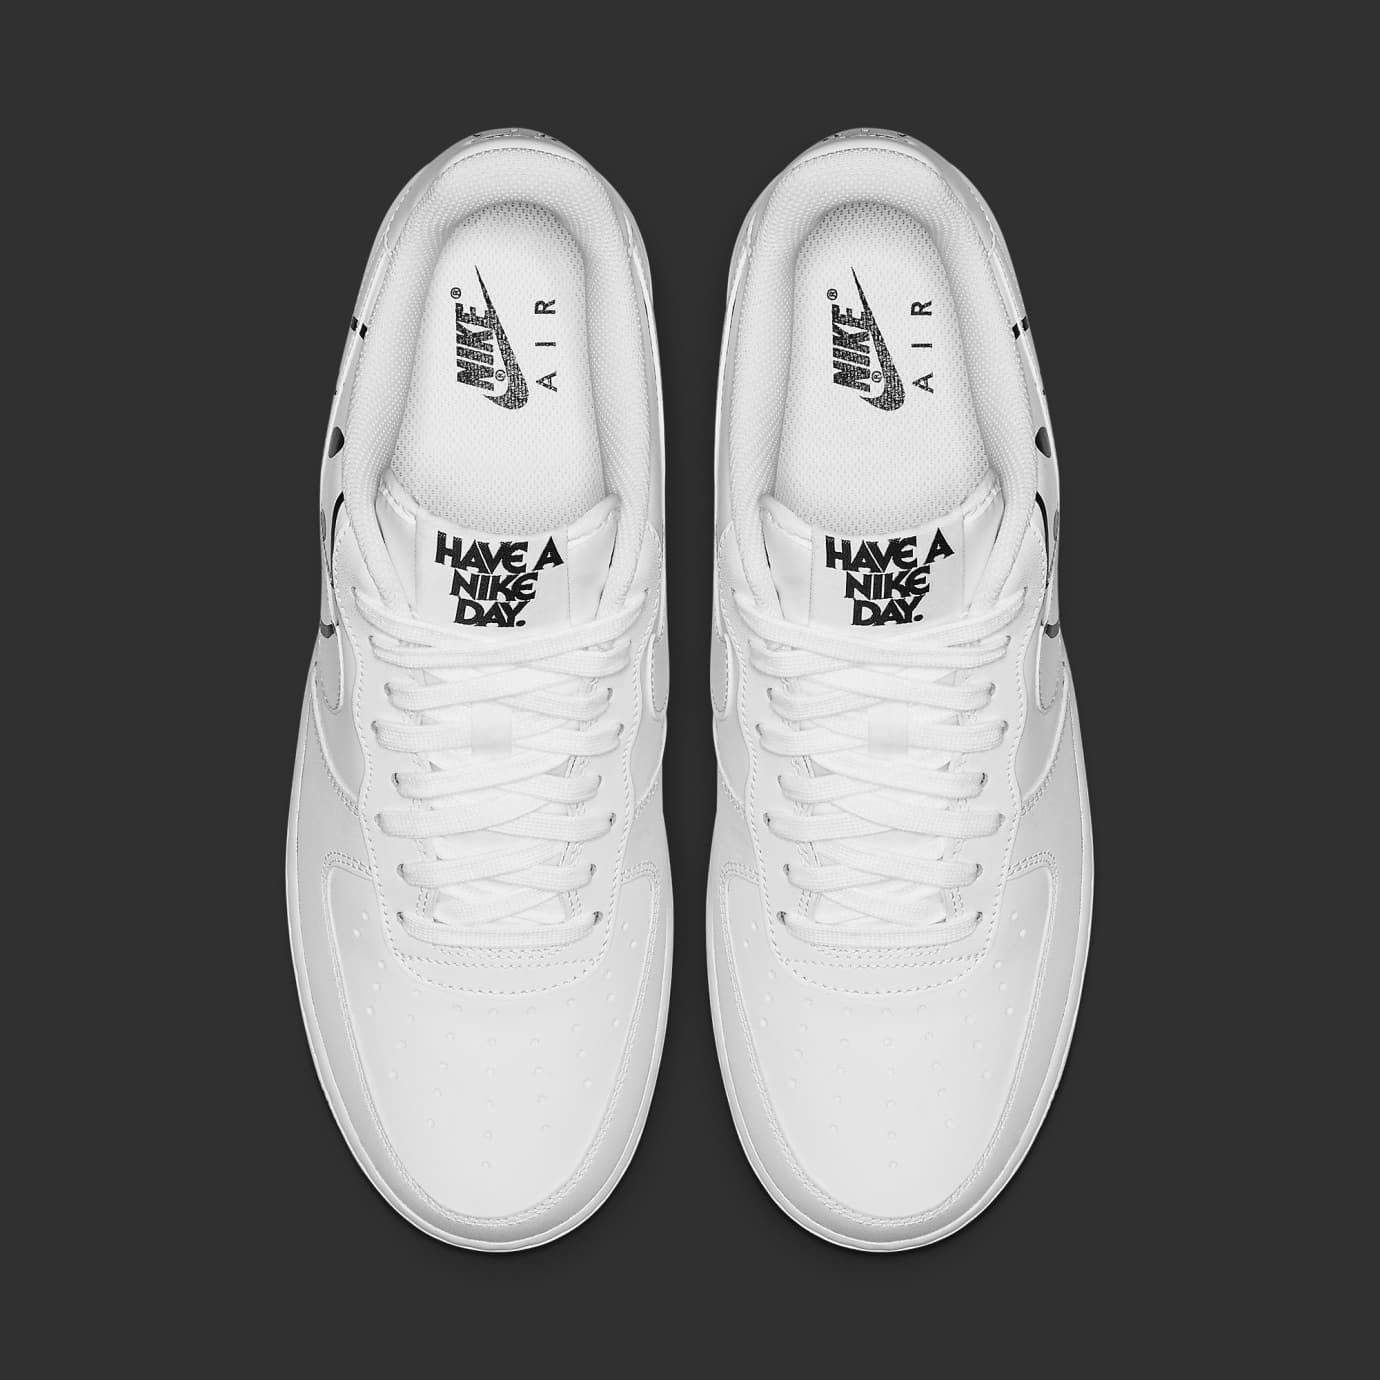 Nike Air Force 1 Low Have A Nike Day Release Info